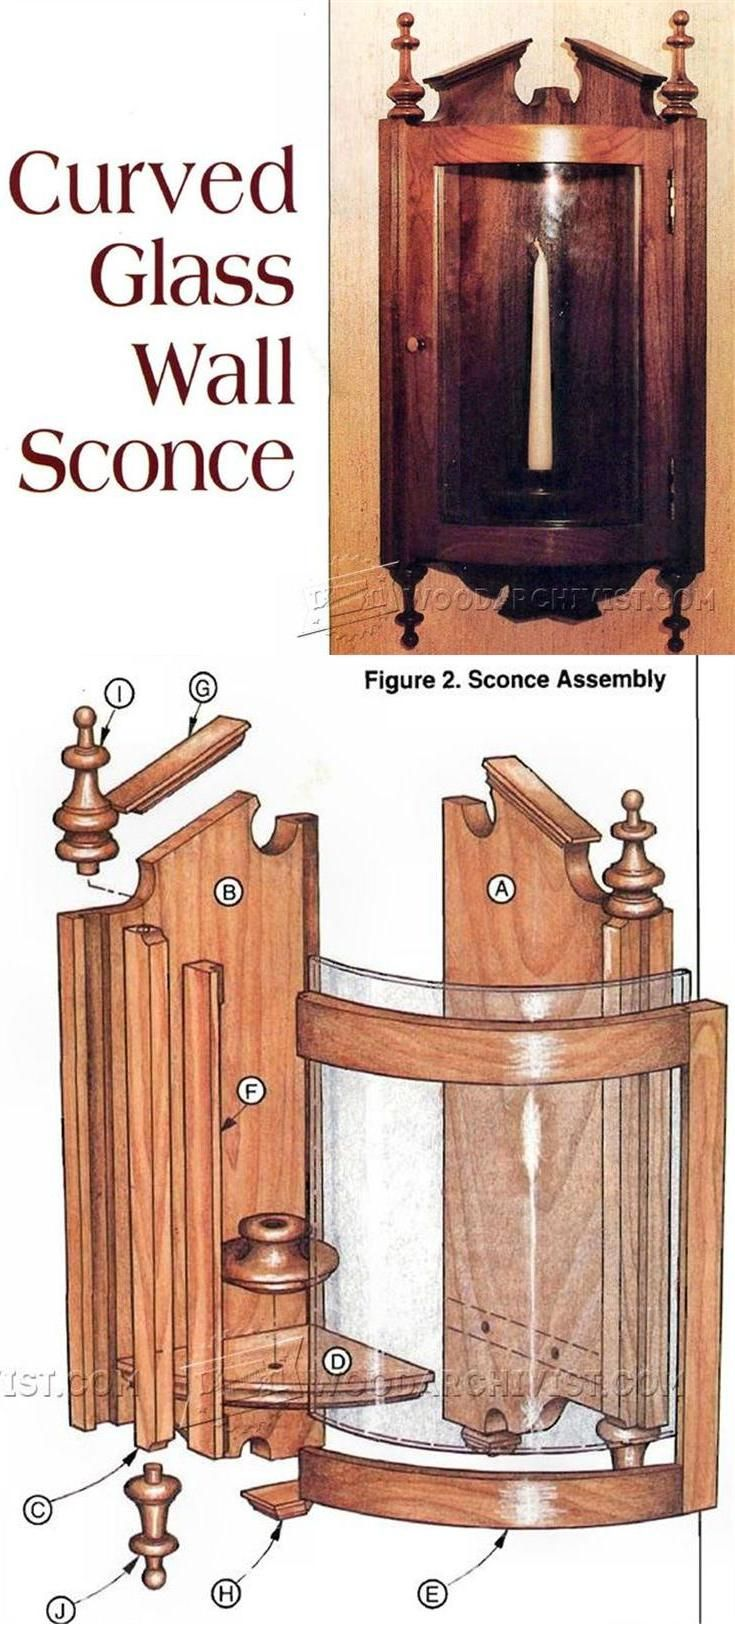 Curved Glass Wall Sconce Plans - Woodworking Plans and Projects   WoodArchivist.com